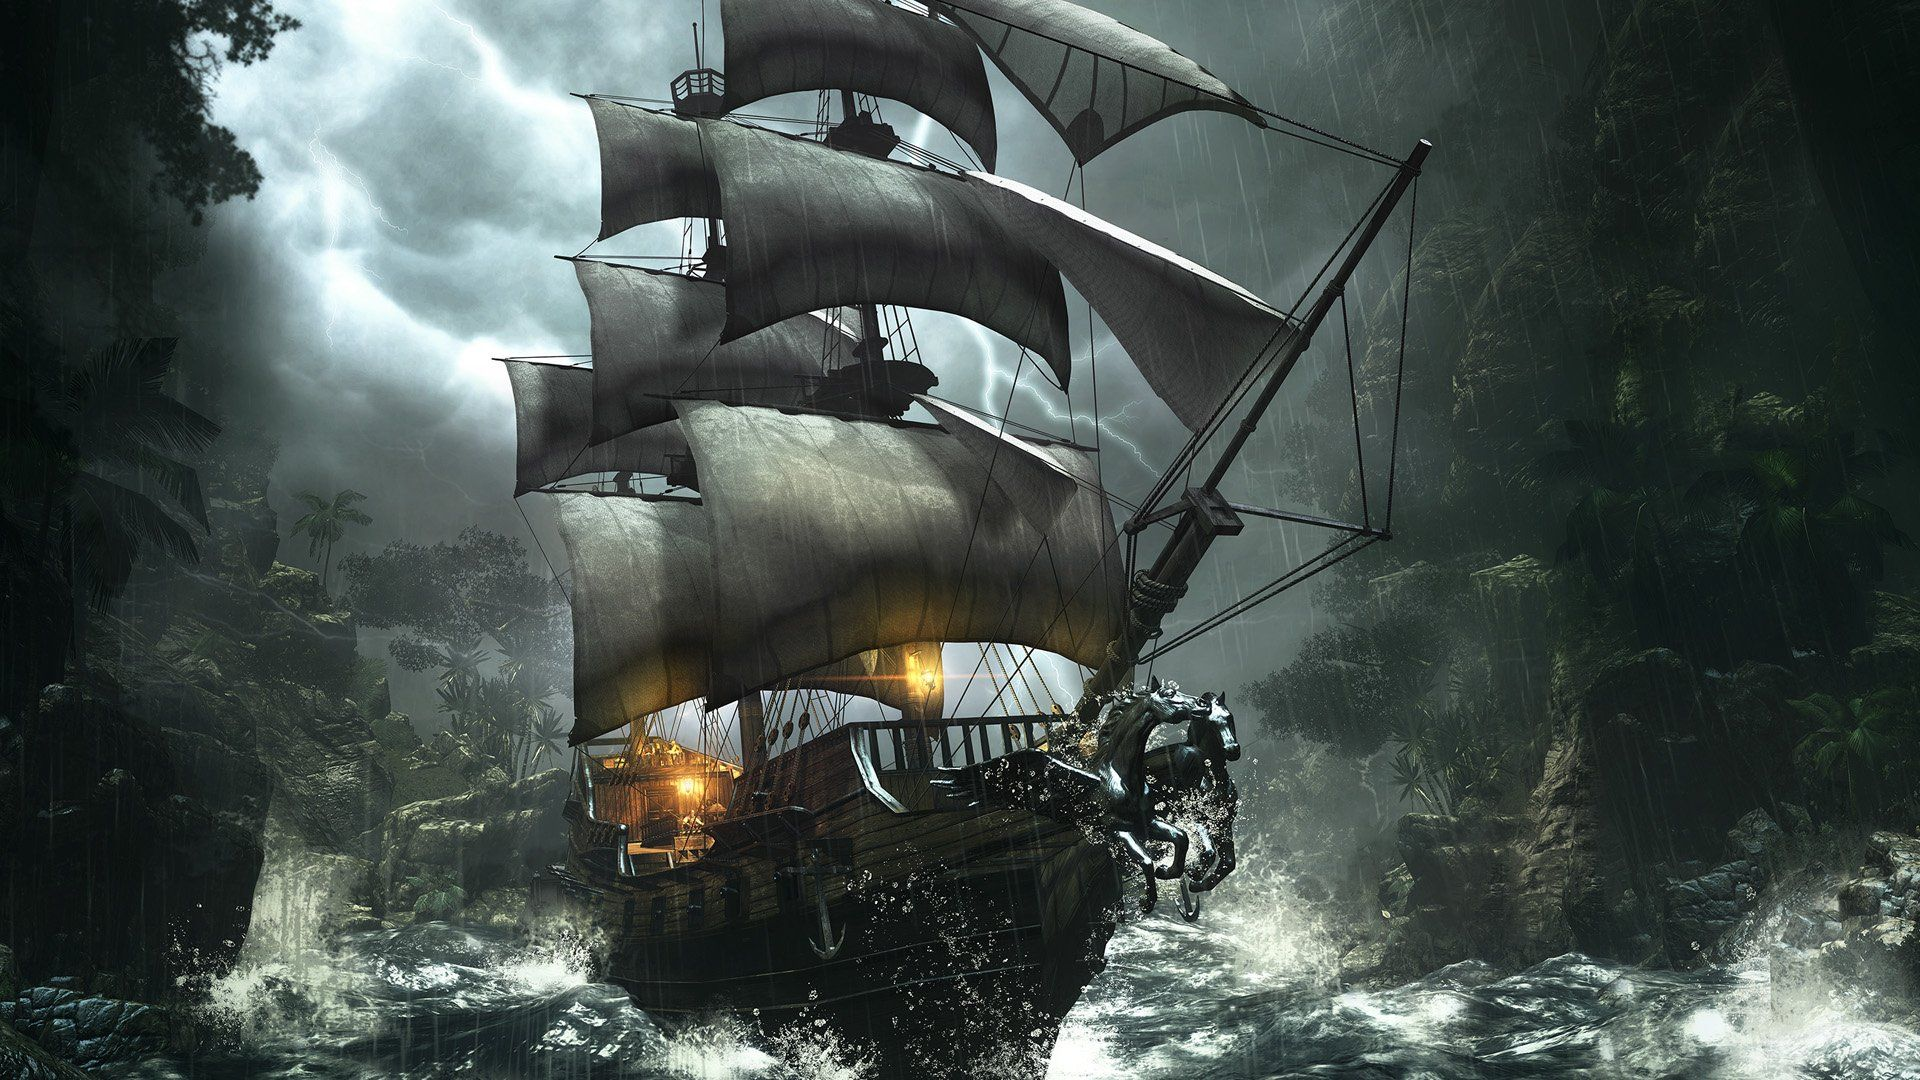 Pirate Ship Wallpaper High Definition #02c20 1920x1080 Px